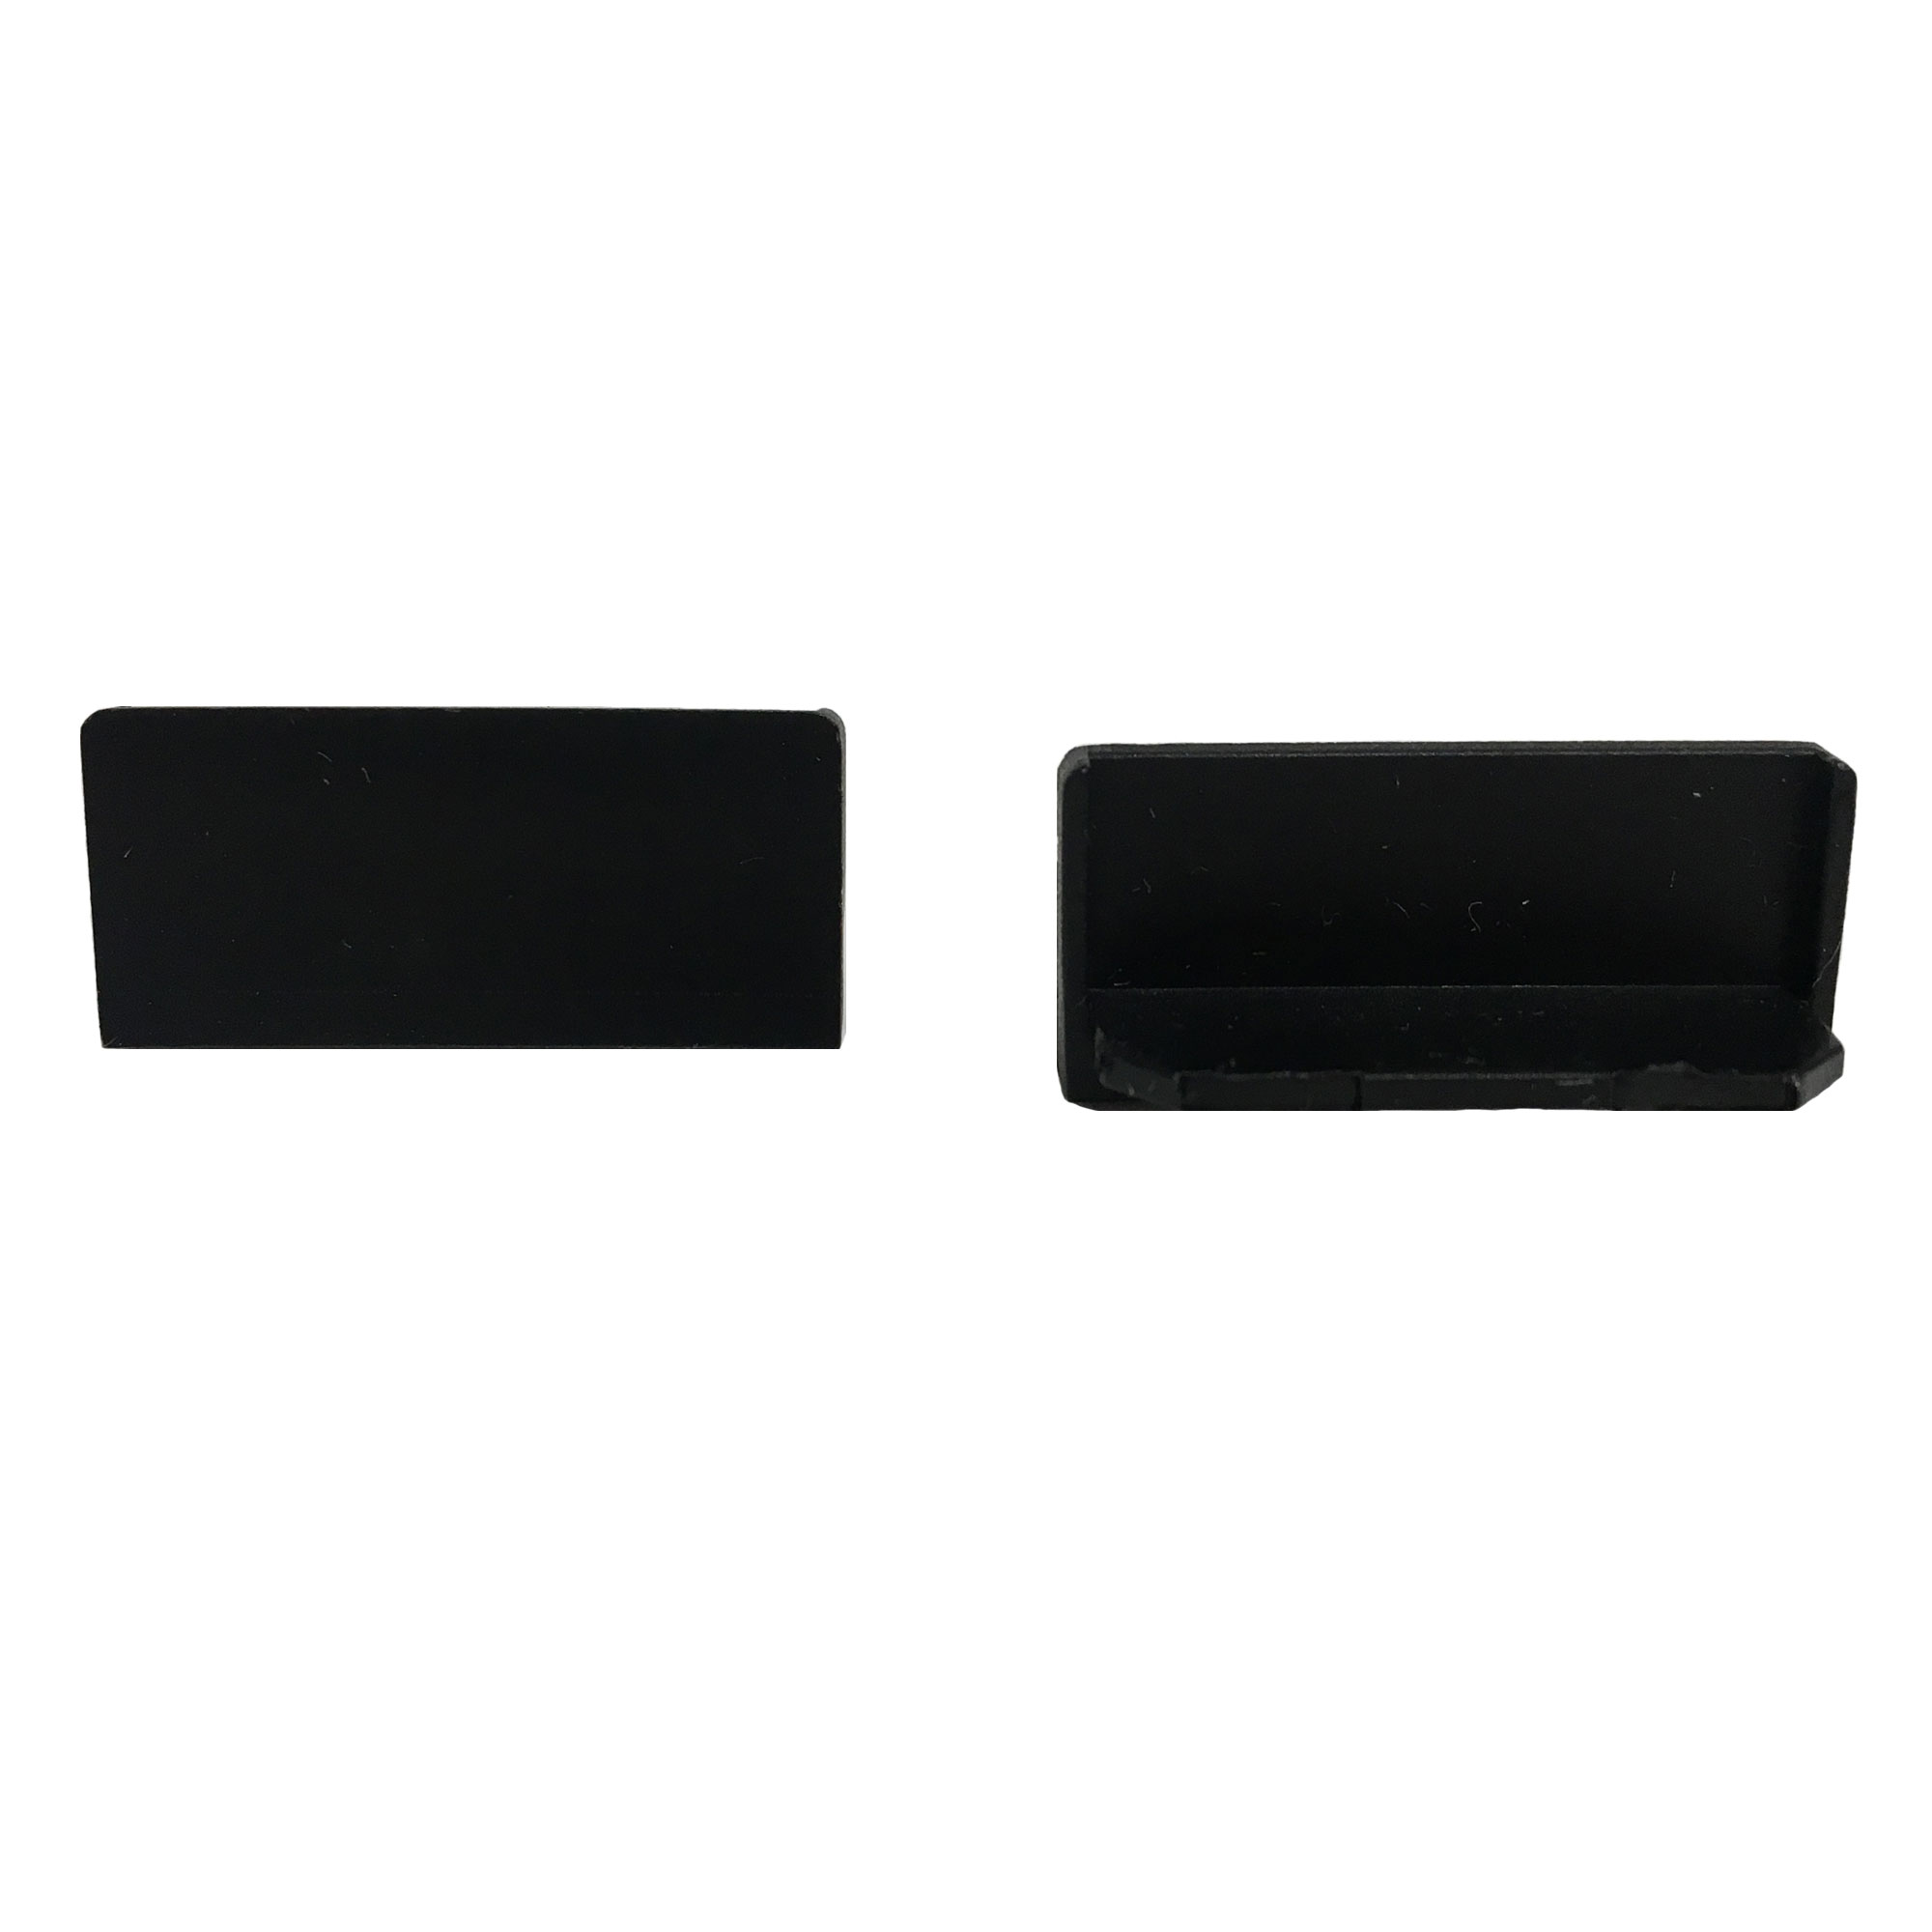 End Cap Snap Channel ES 1.0 Black   SKU: 75755